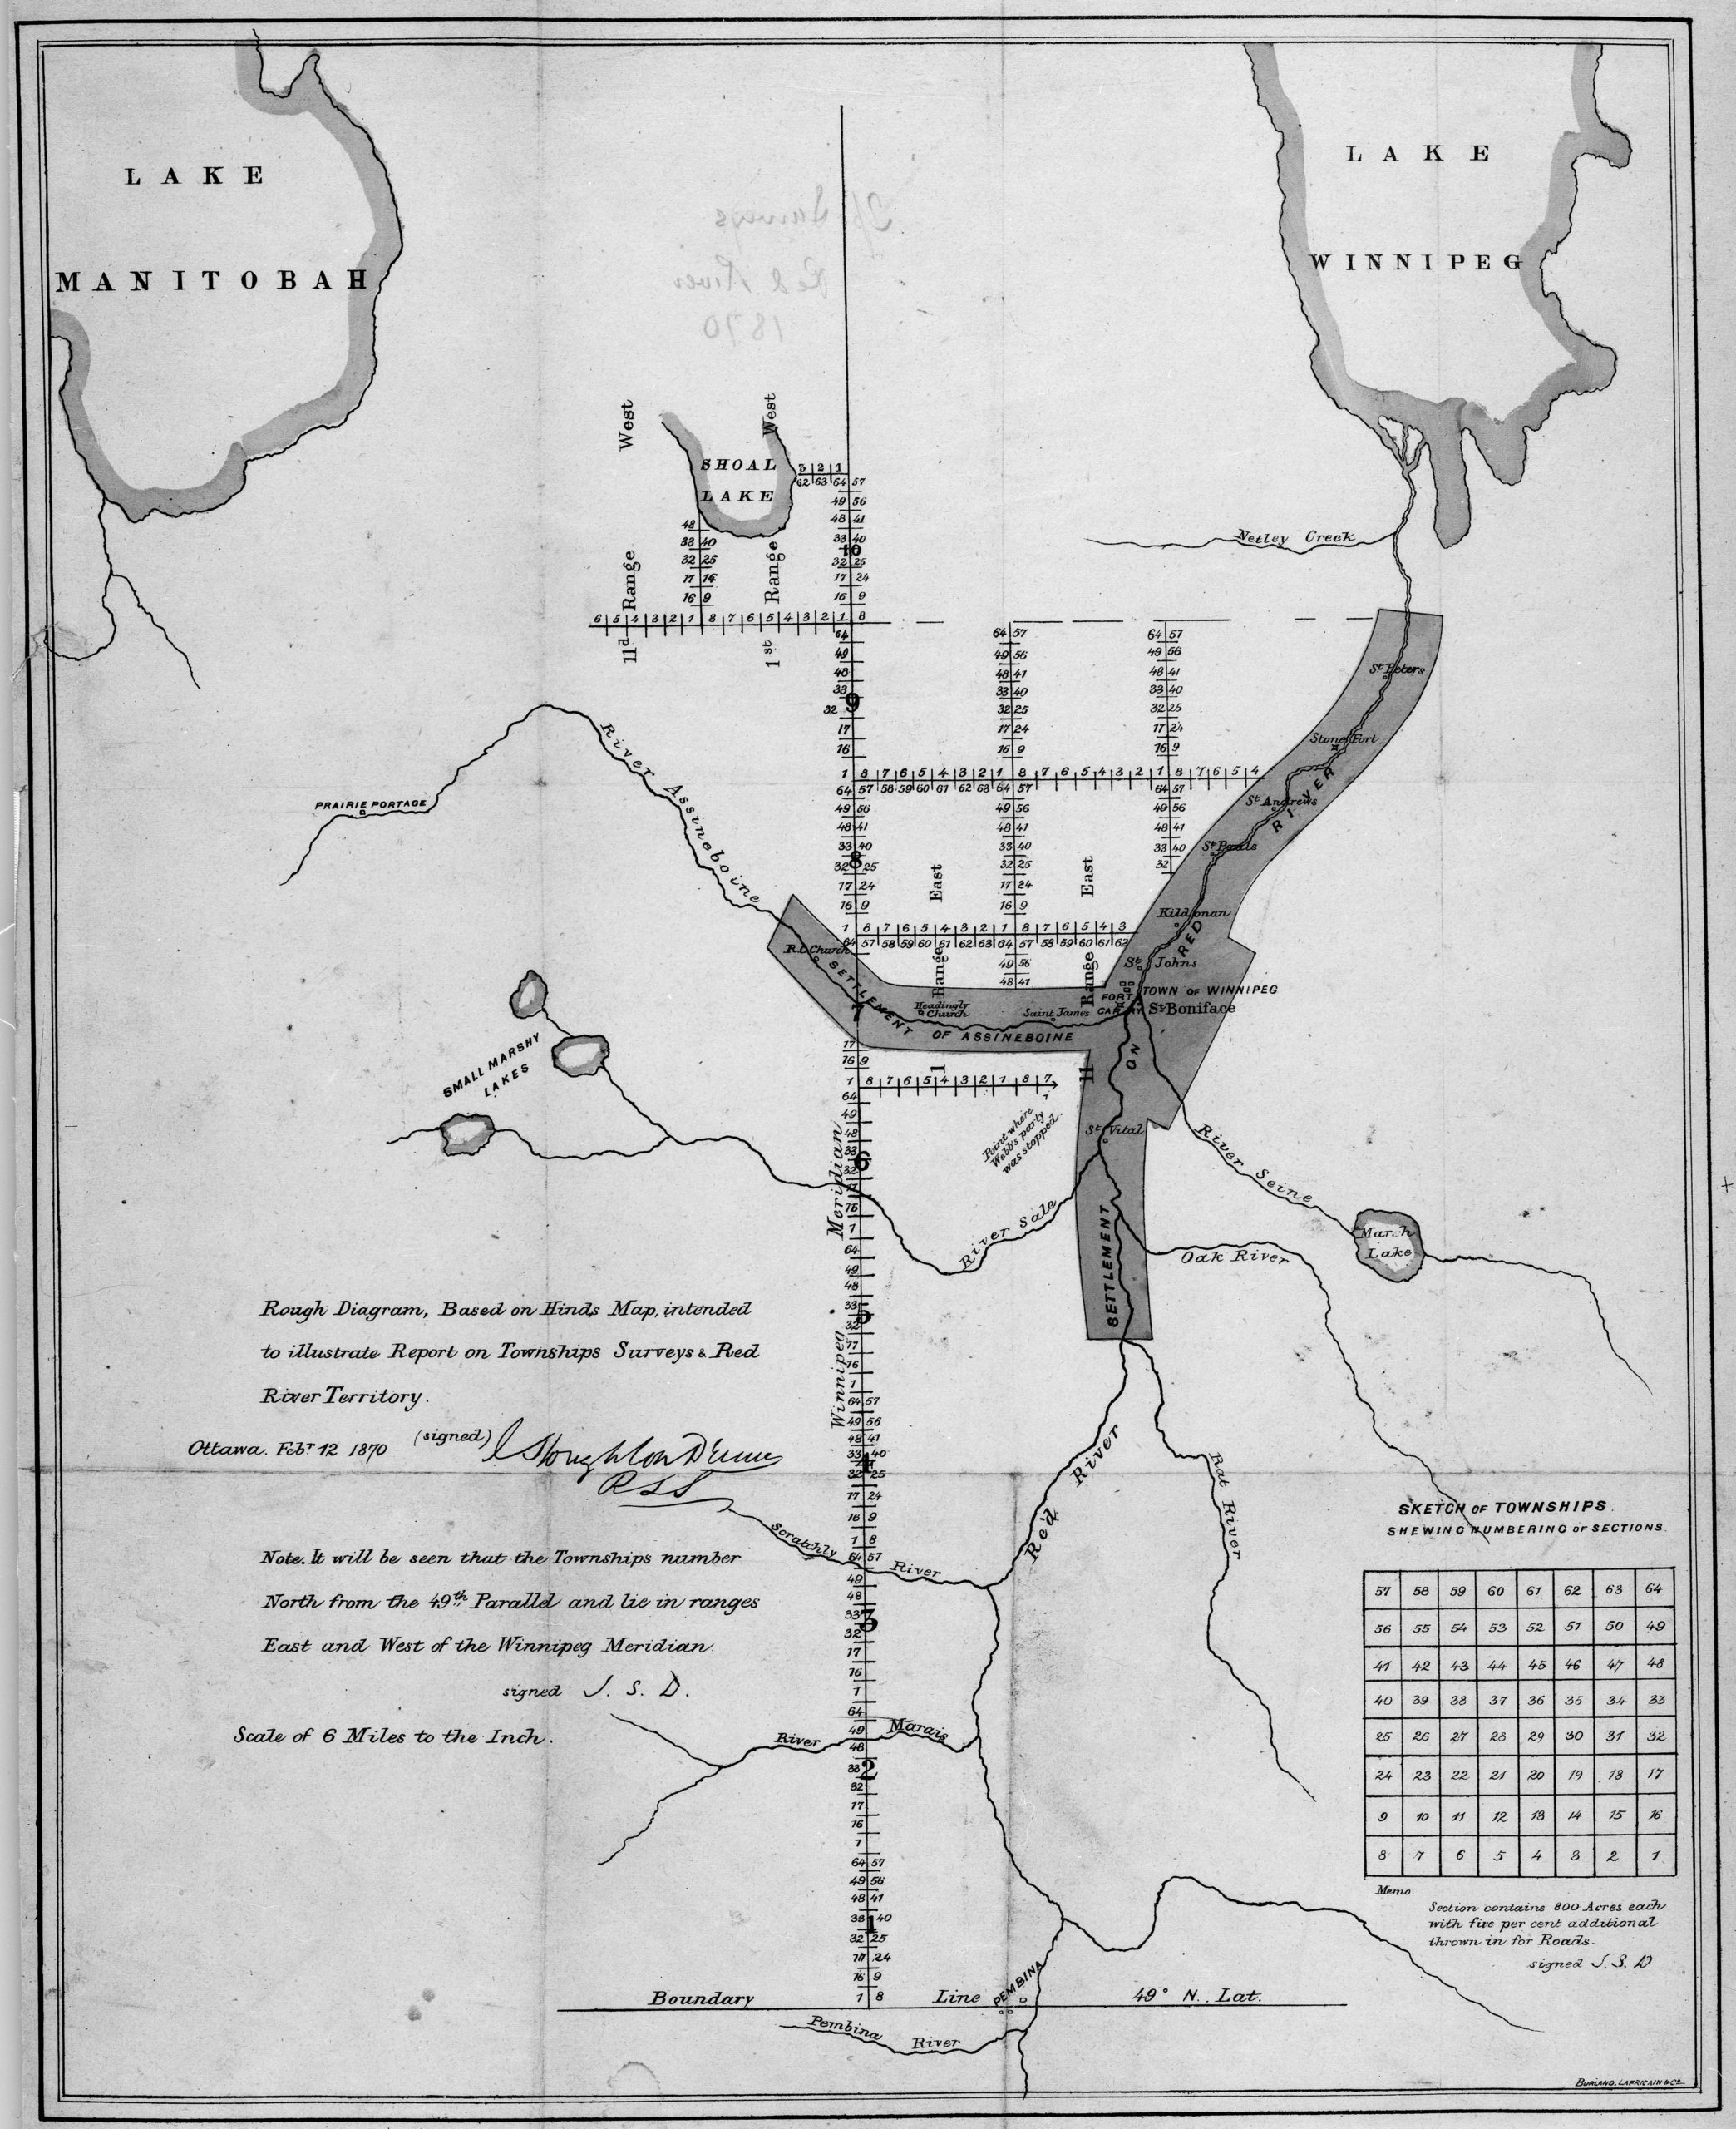 1869 land survey of the Red River Plain.